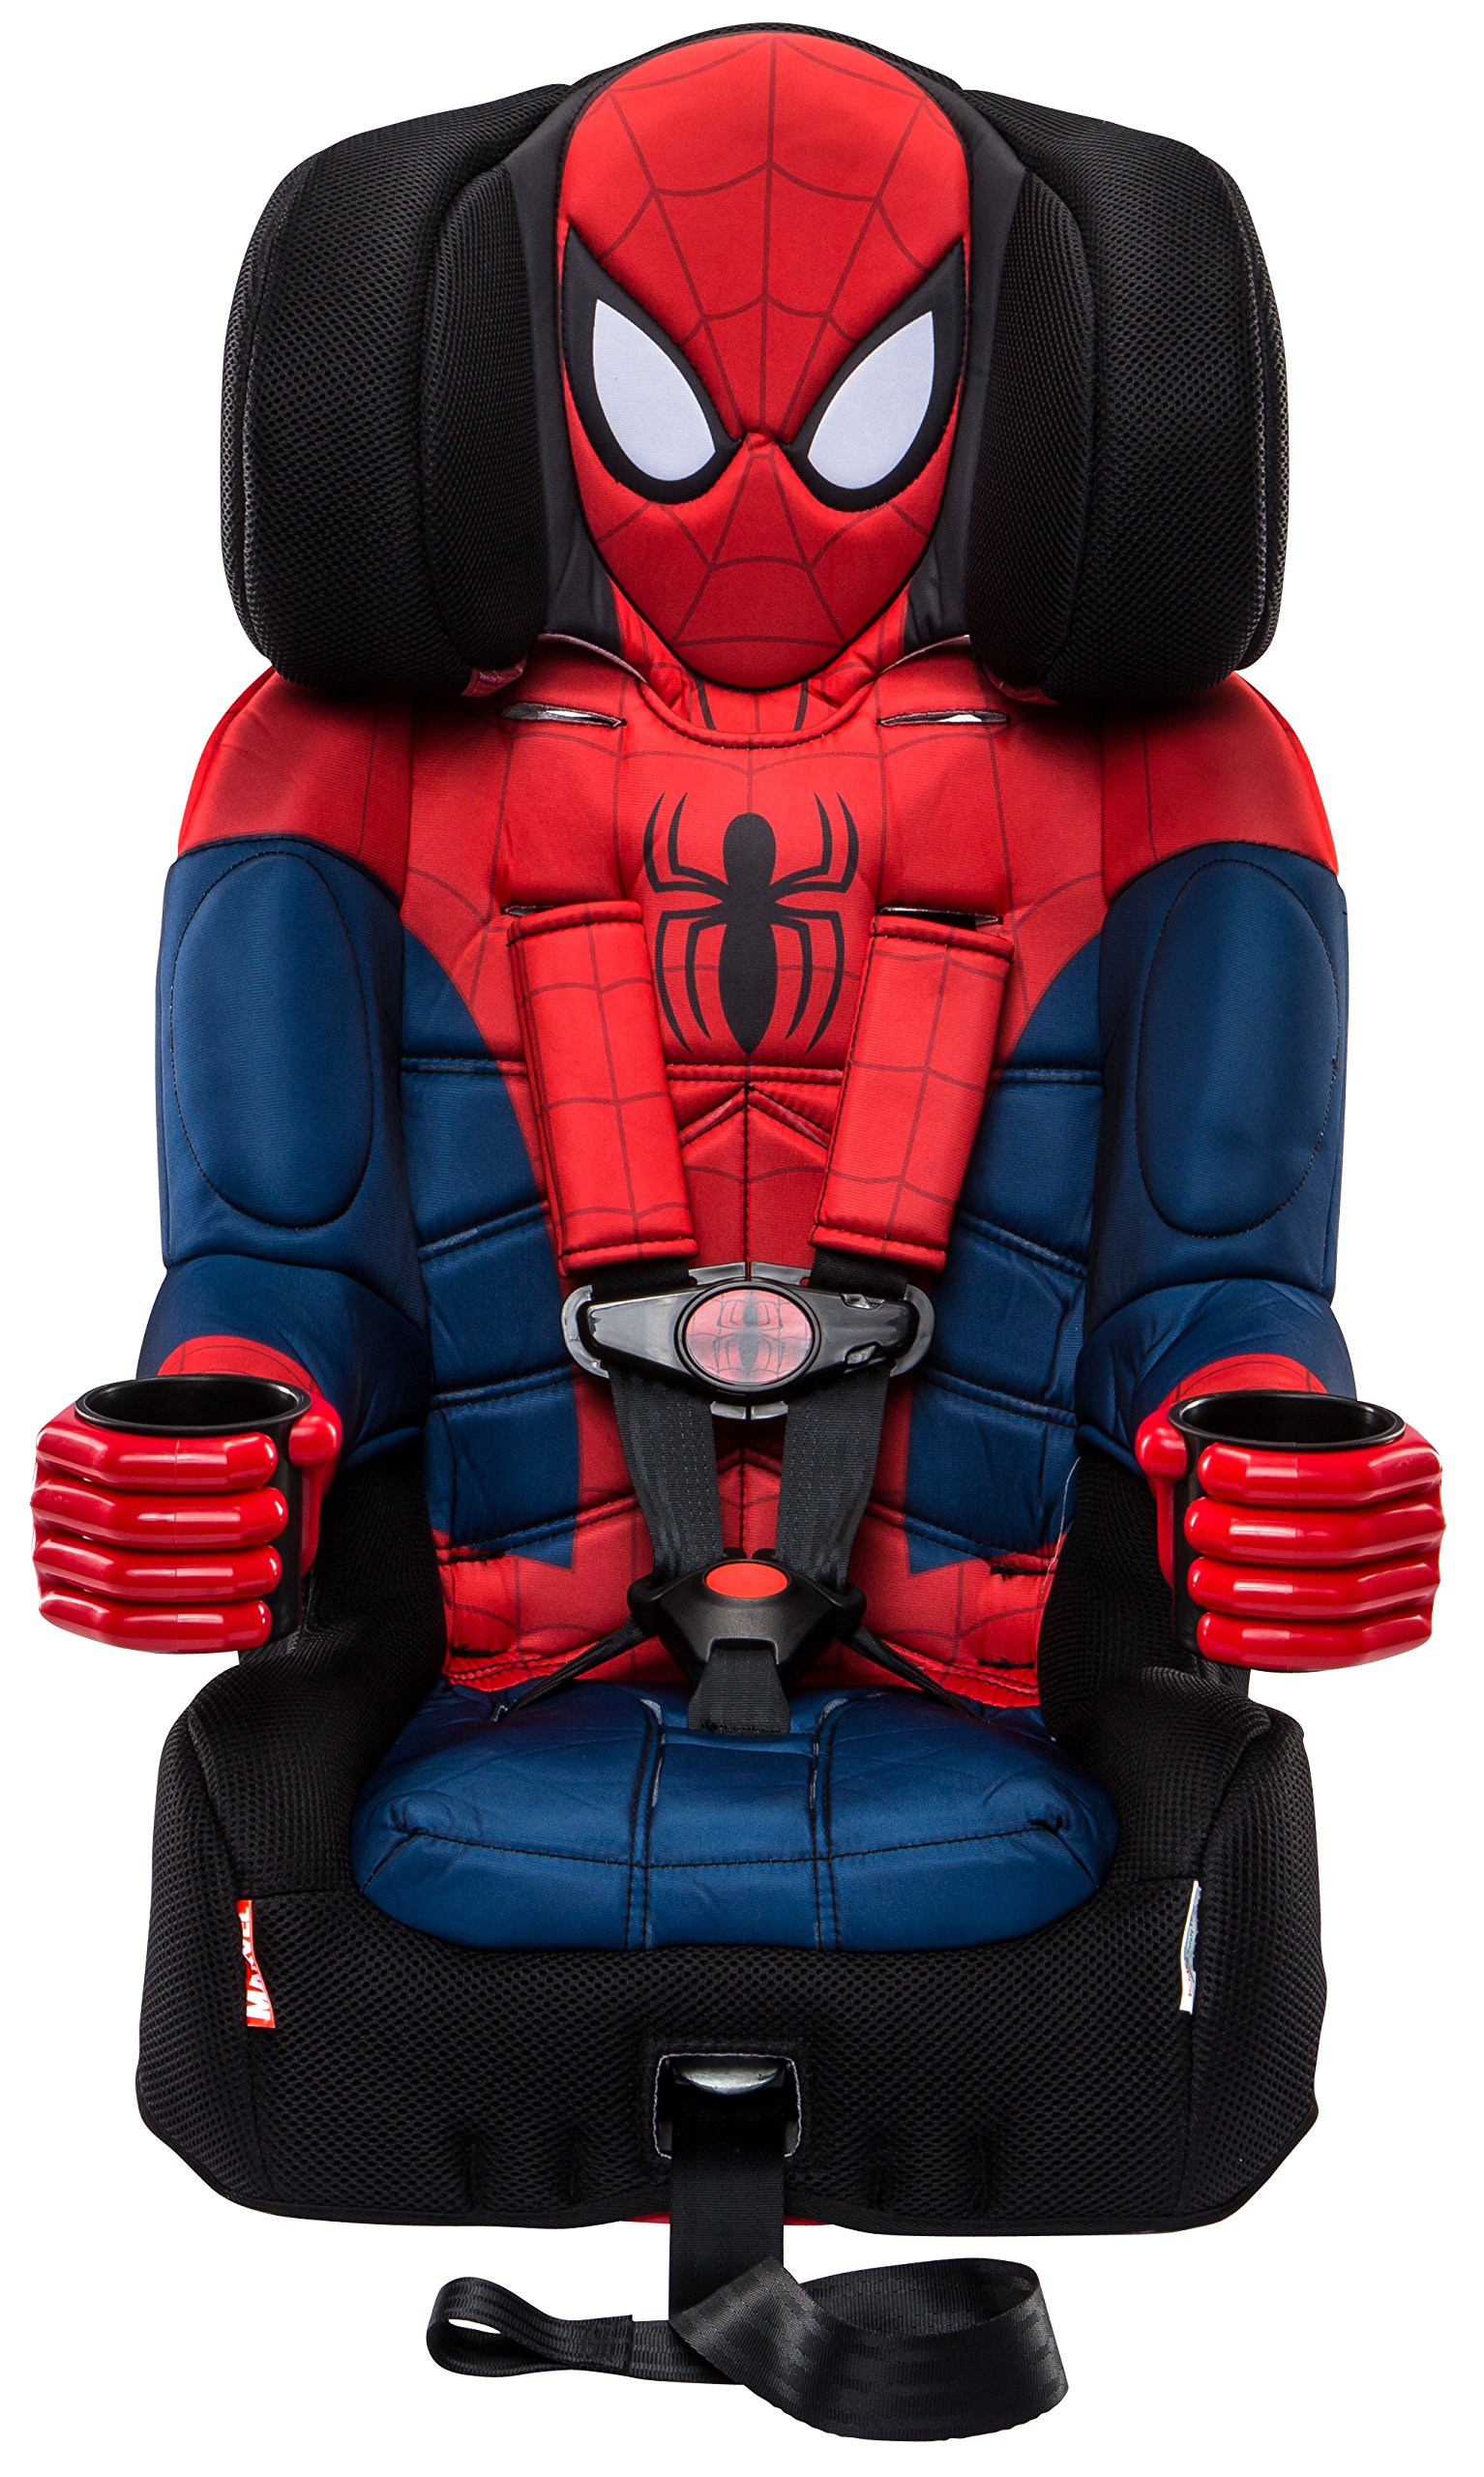 KidsEmbrace Combination Toddler Harness Booster Car Seat, Marvel's Ultimate Spider-Man